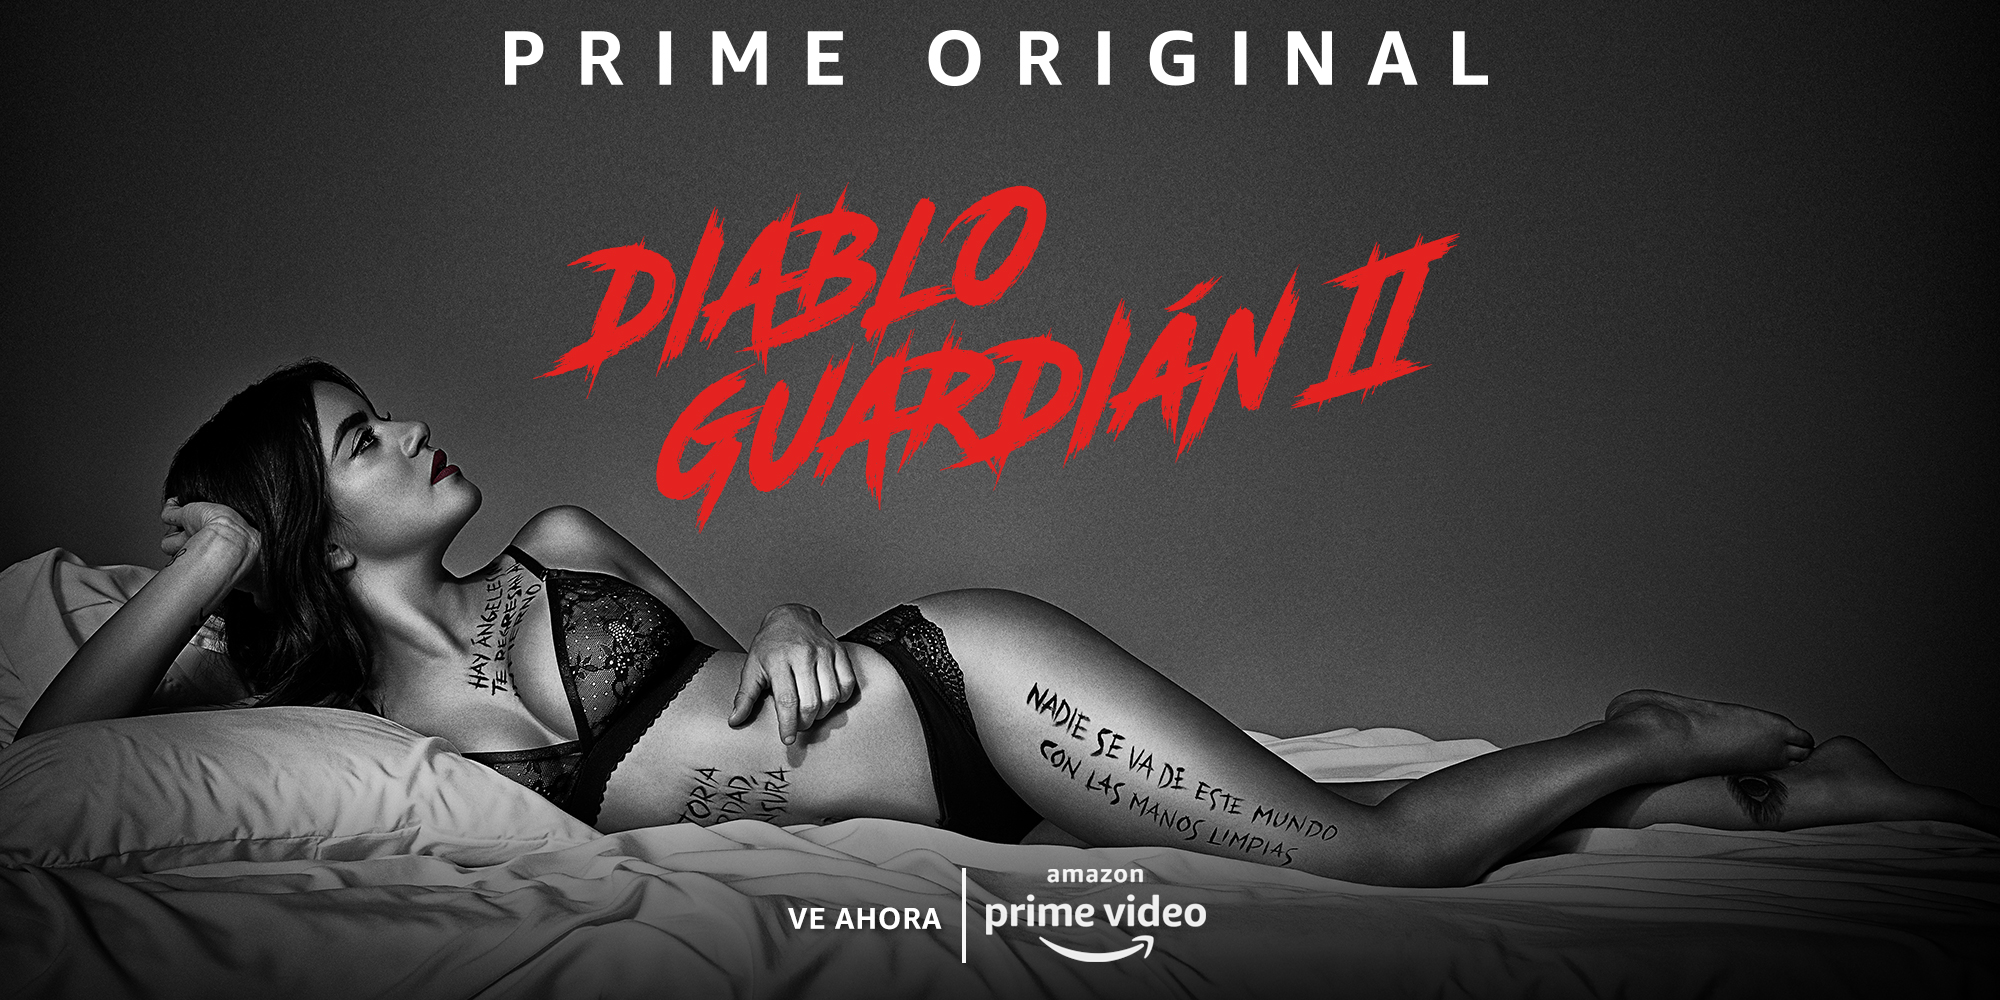 amazon-prime-video-diablo-guardian-01